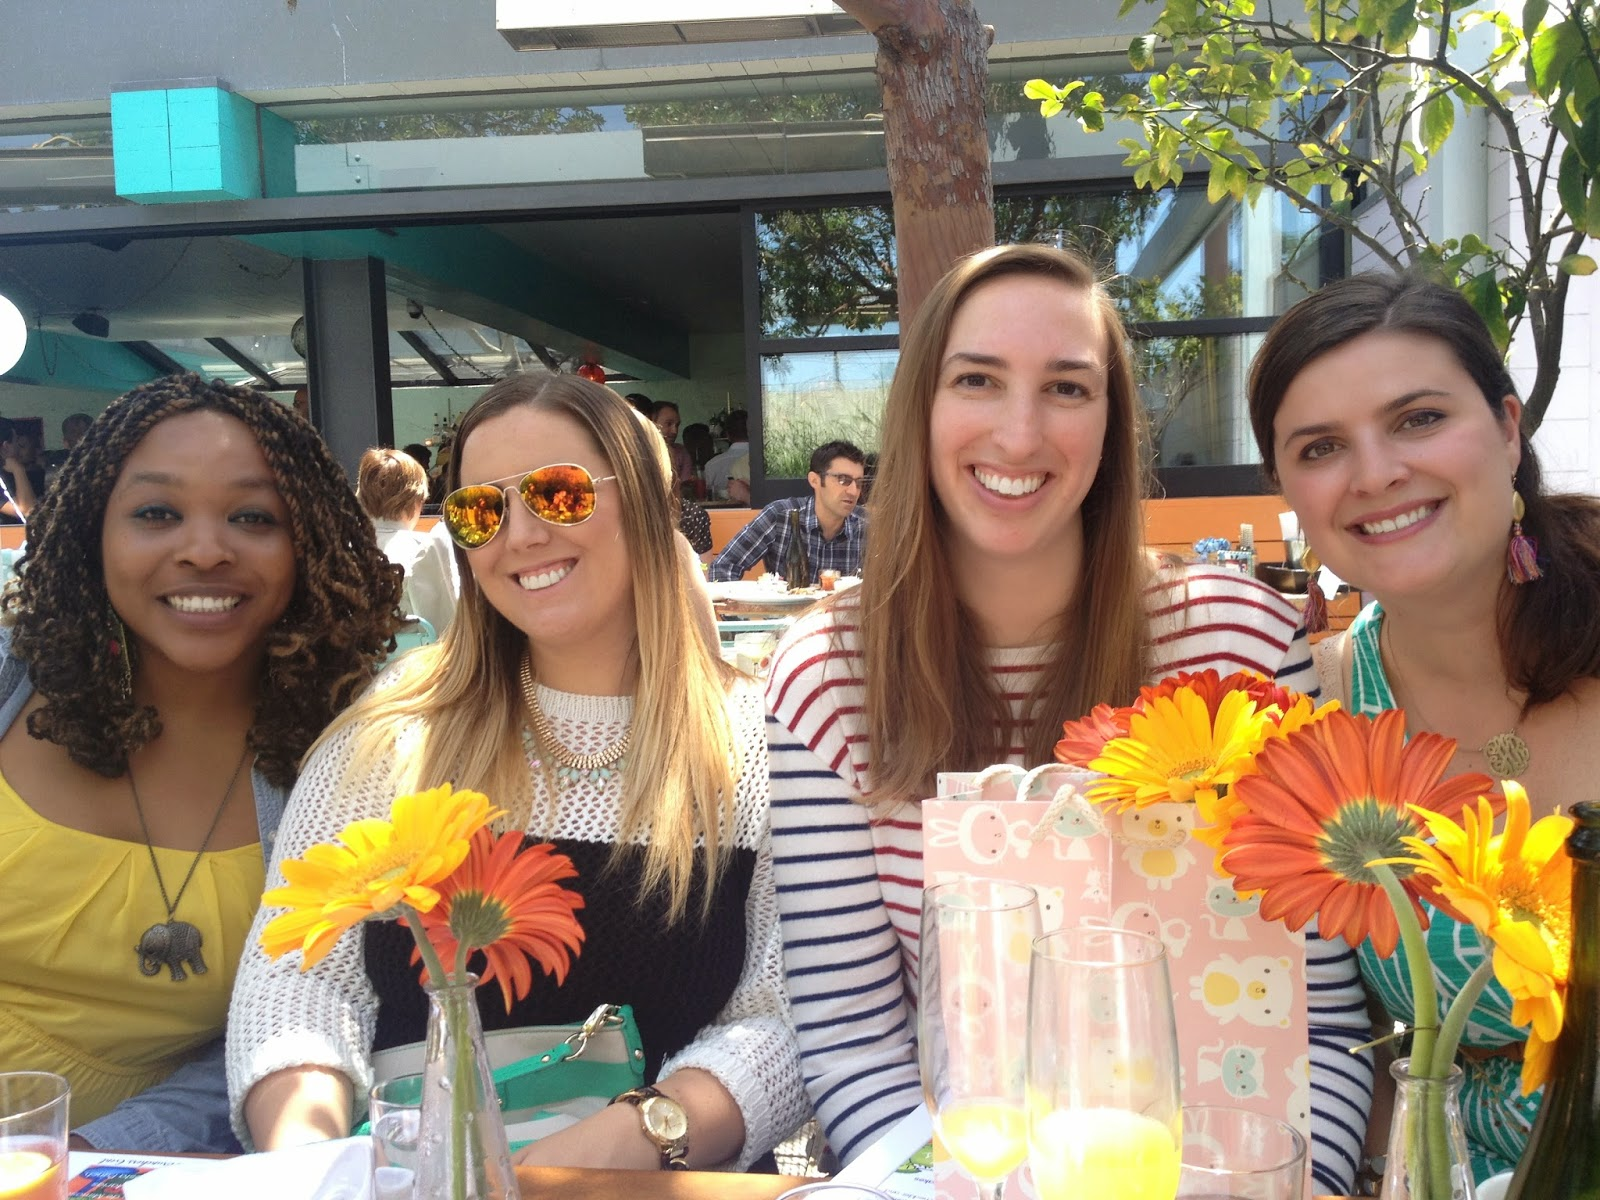 SoCal Bloggers - Join the Gossip